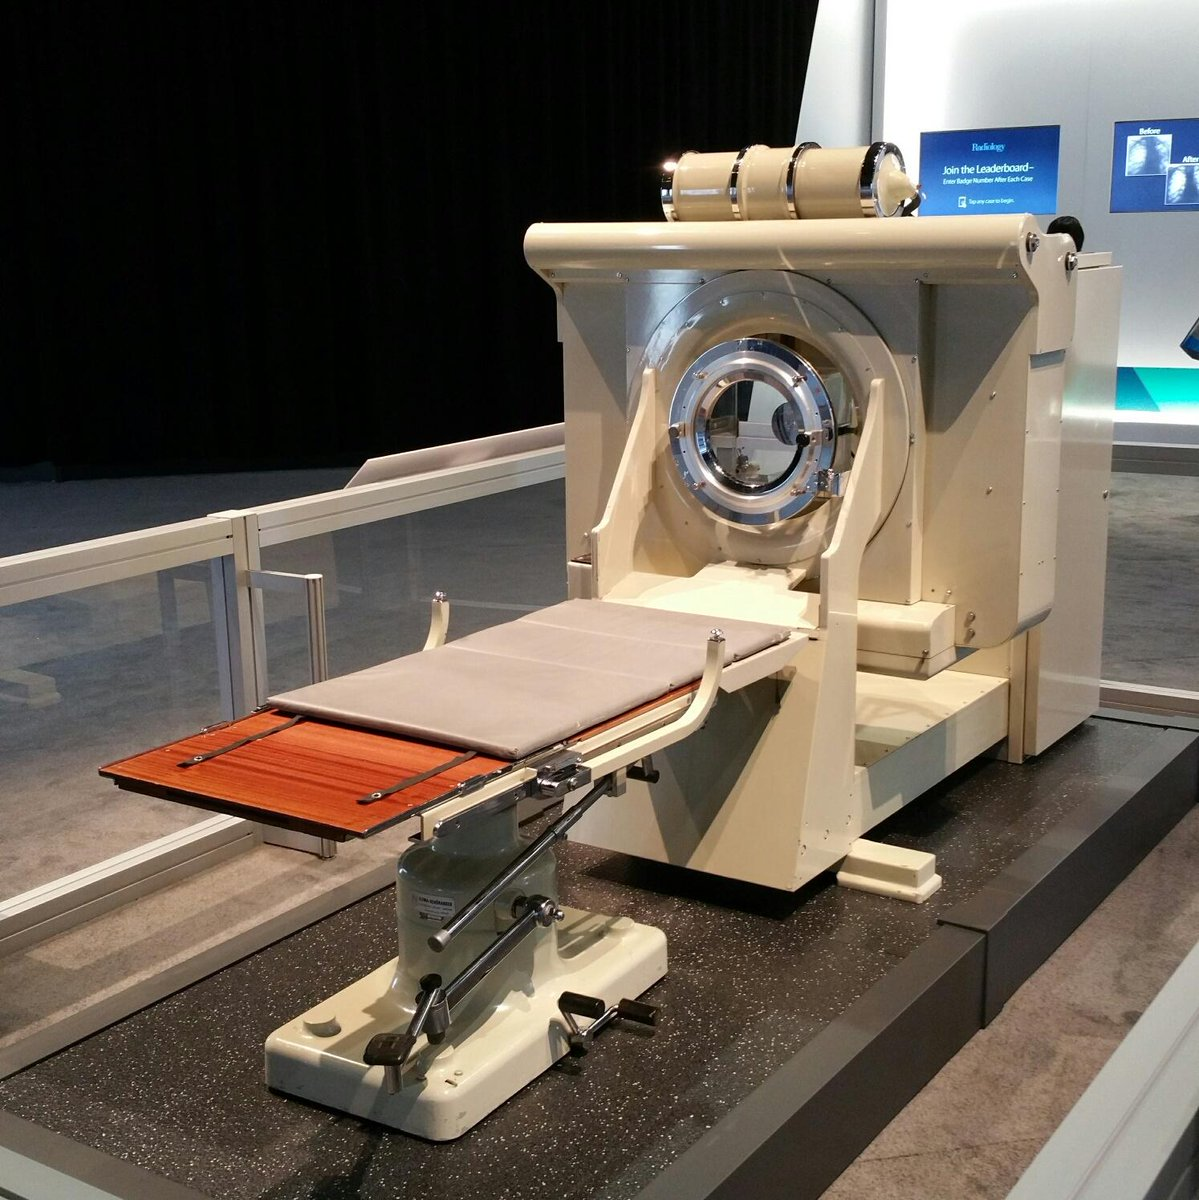 emi and the ct scanner essay Describes the development of the first ct scanner by emi, a company new to the  medical industry, and emi's entry into the us market.